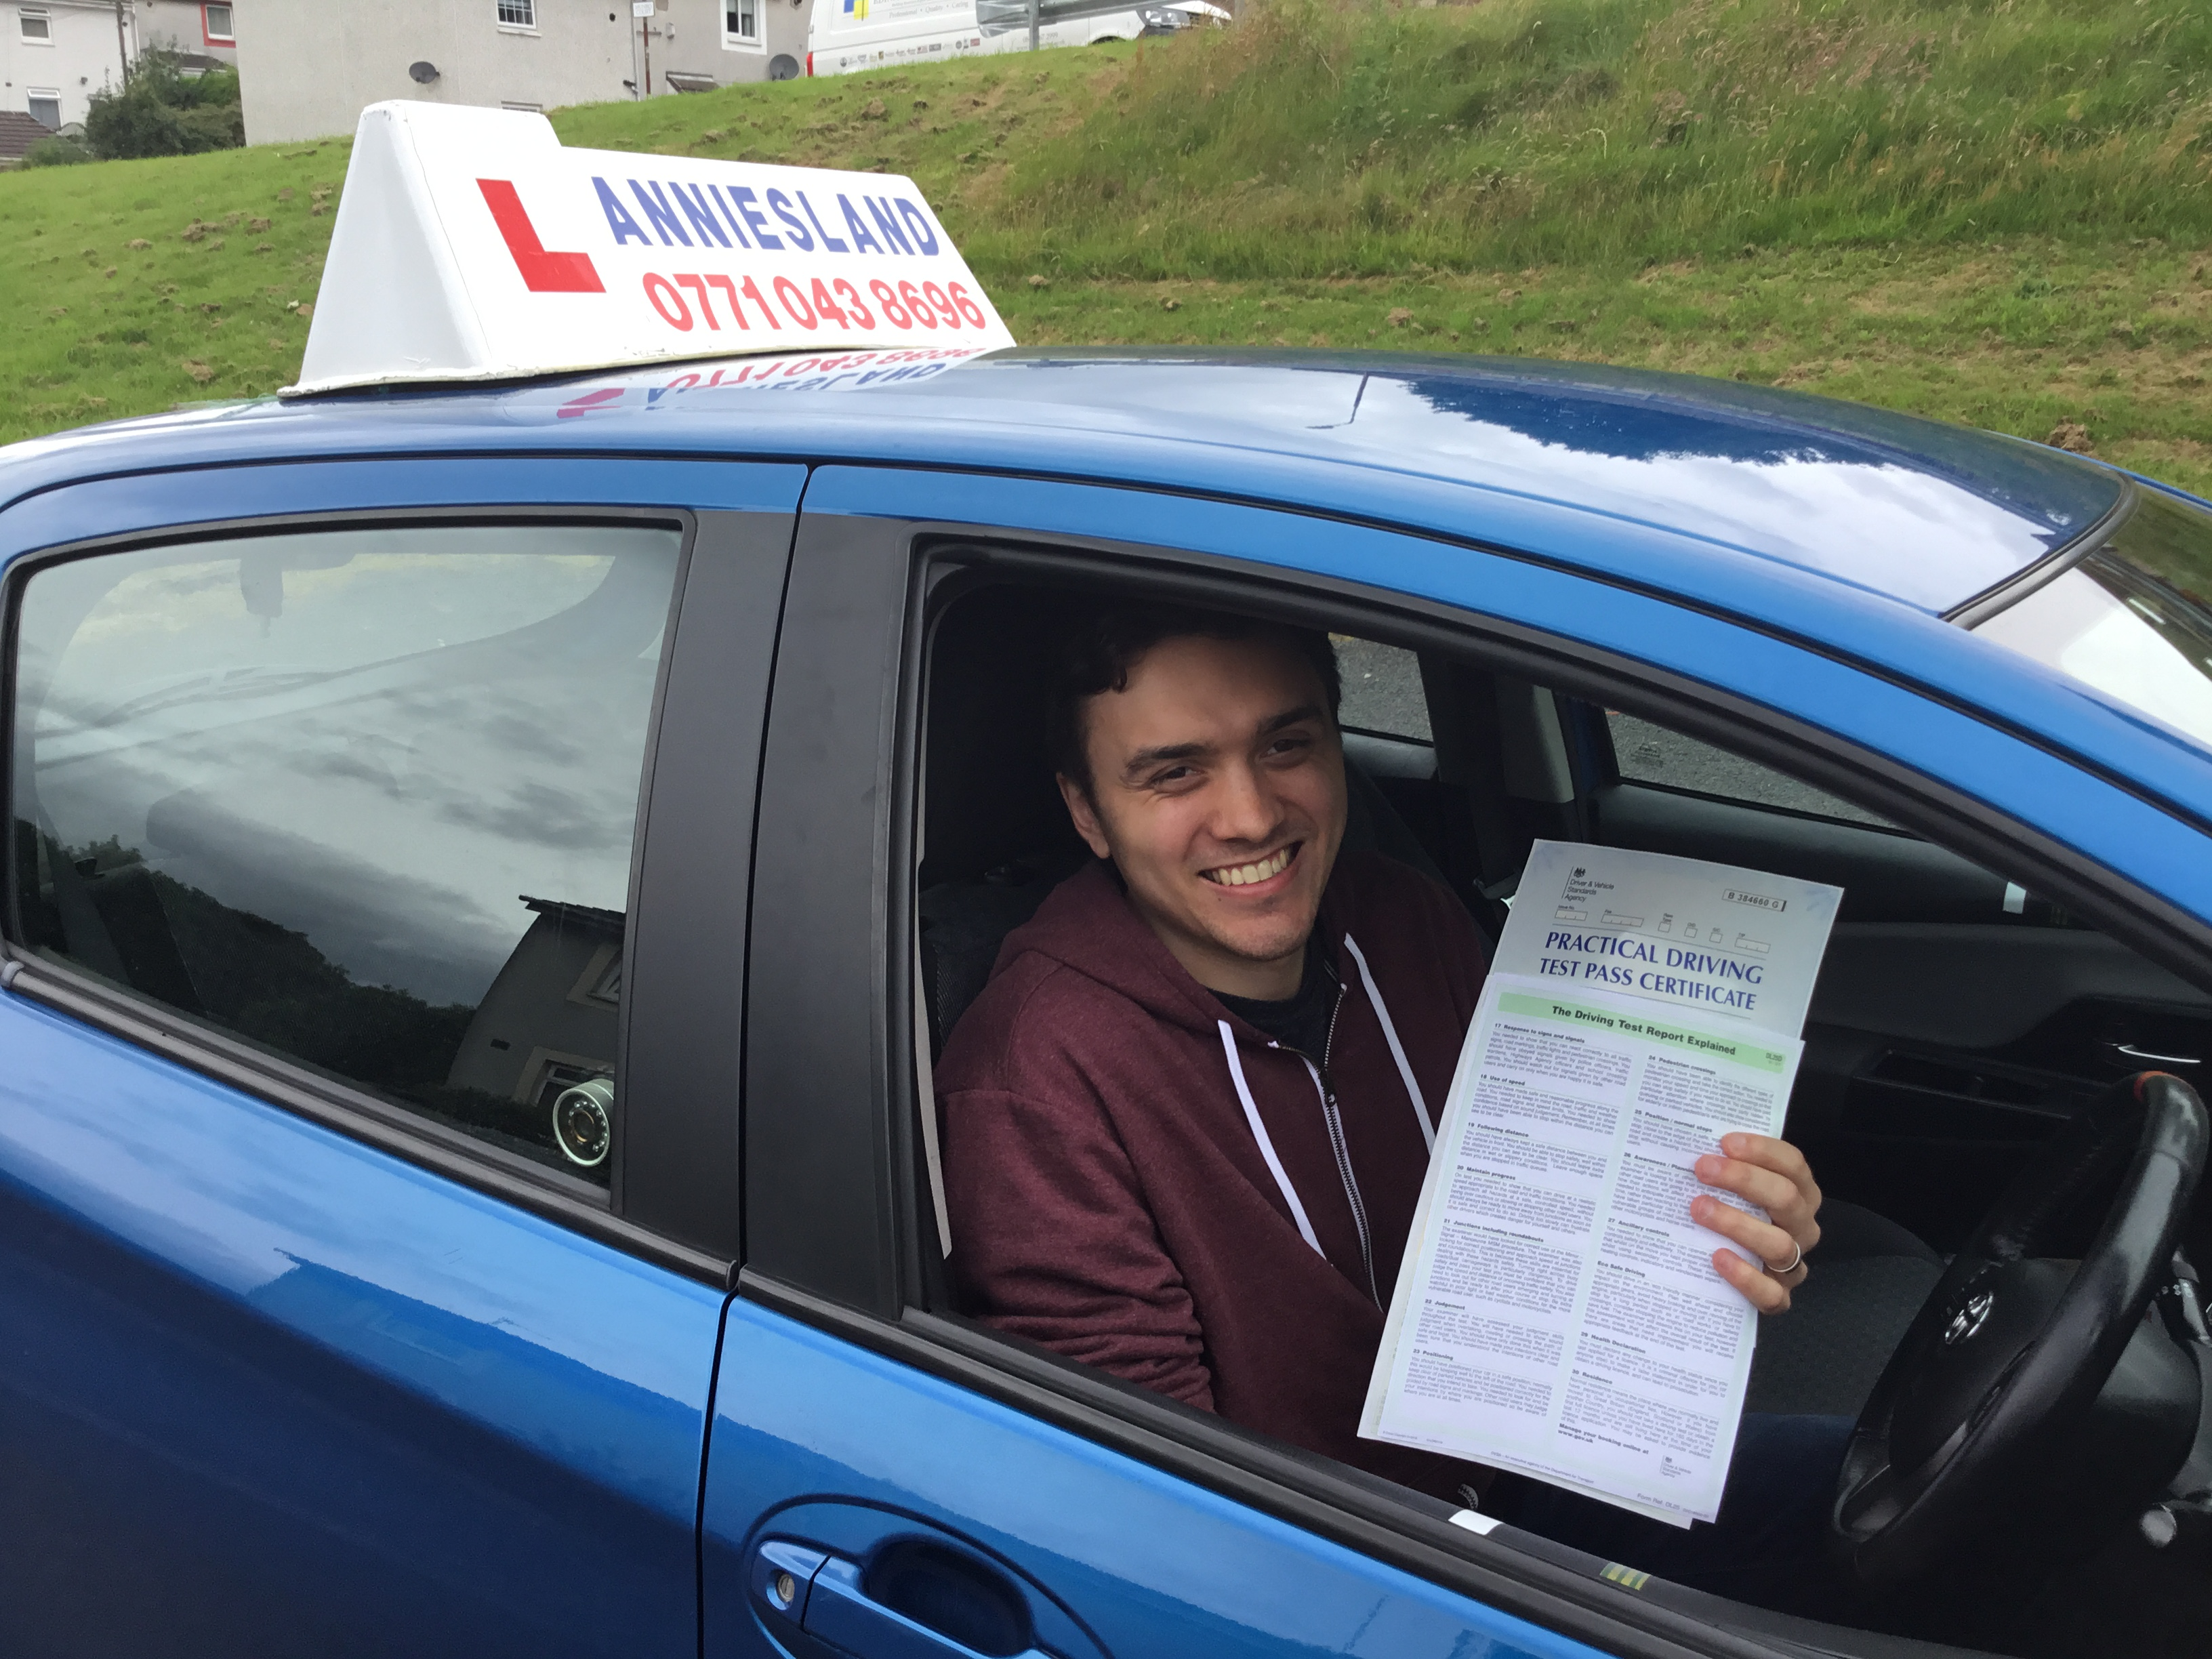 Ryan Kounnas successfully passed their driving test with Anniesland Driving School